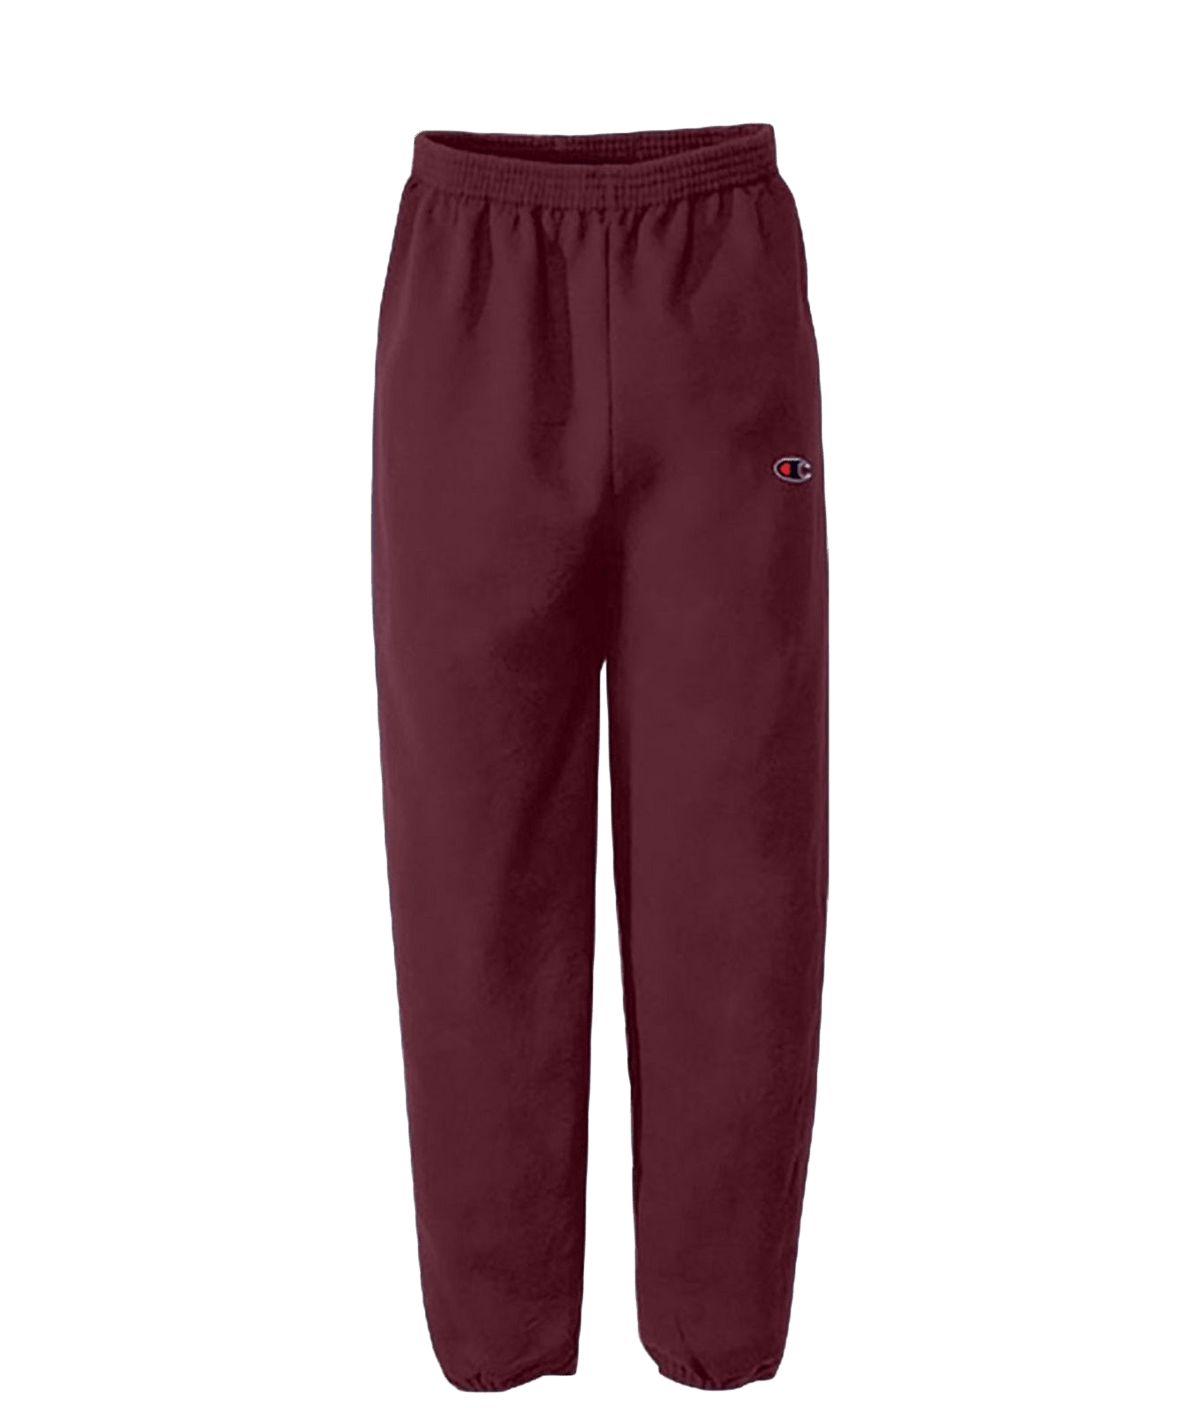 Champion P790 Youth Eco Fleece Without Pockets Pant